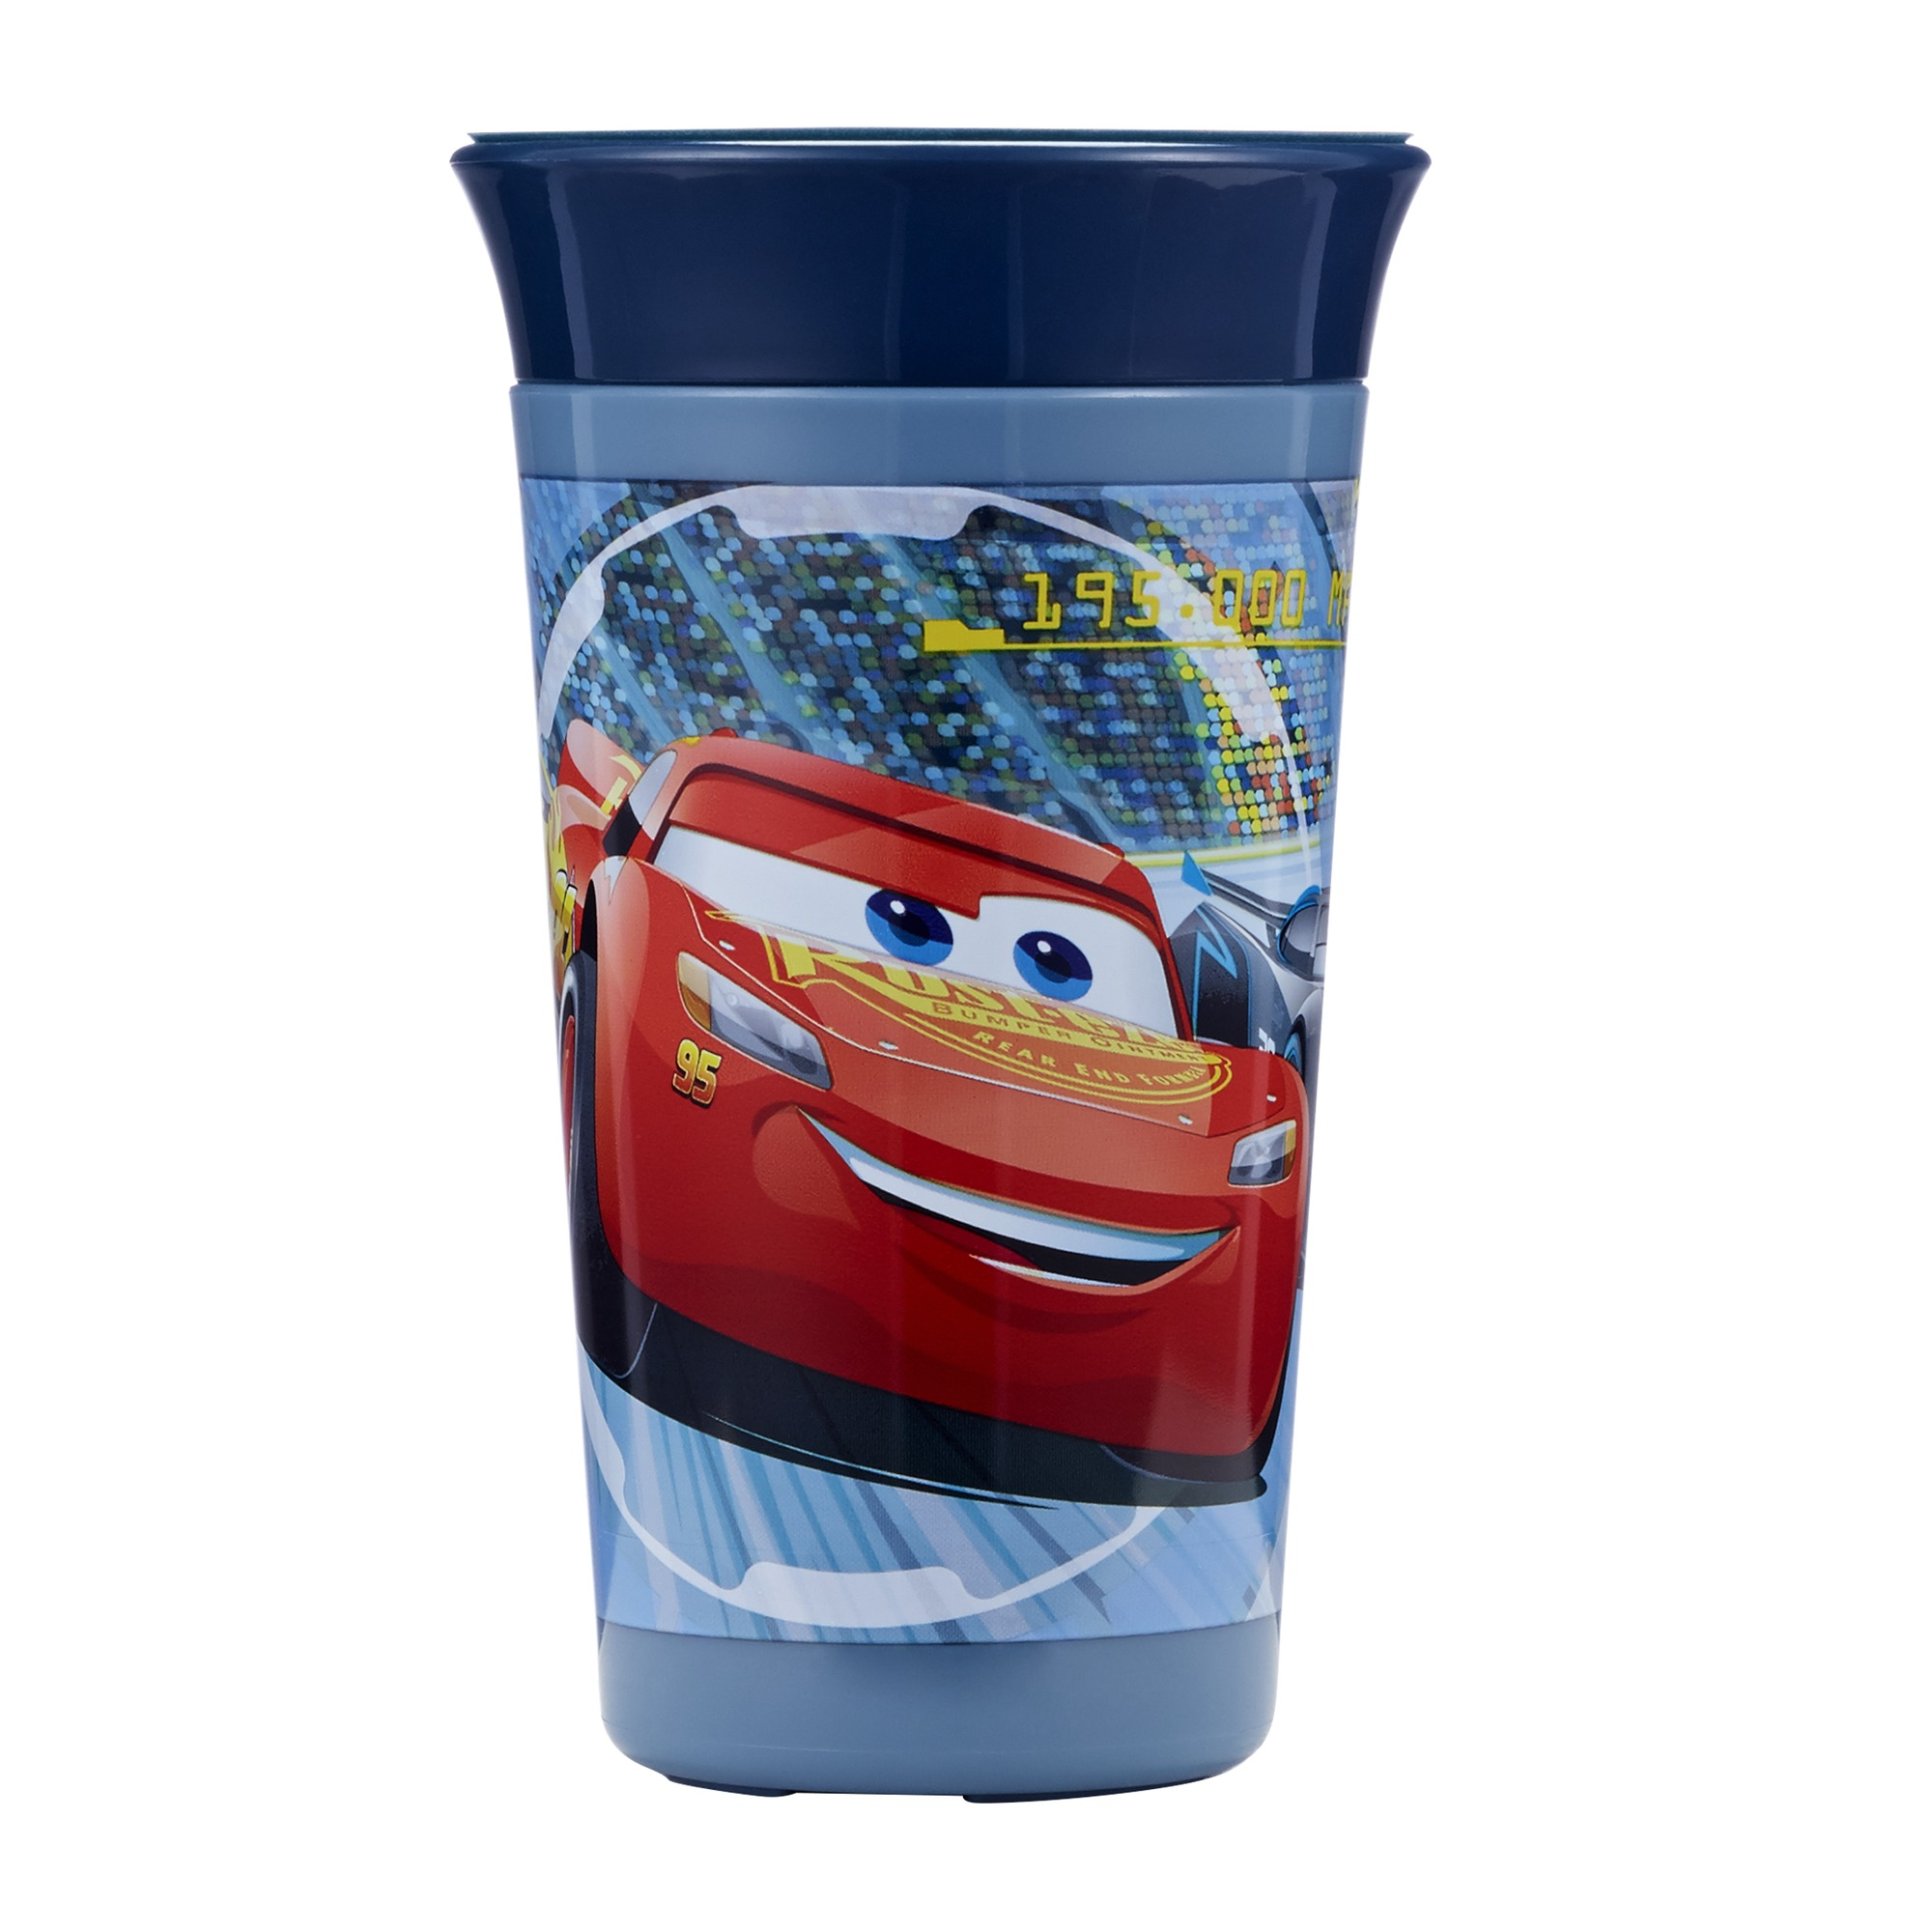 The First Years Disney Pixar Simply Spoutless Sippy Cup - Cars 3